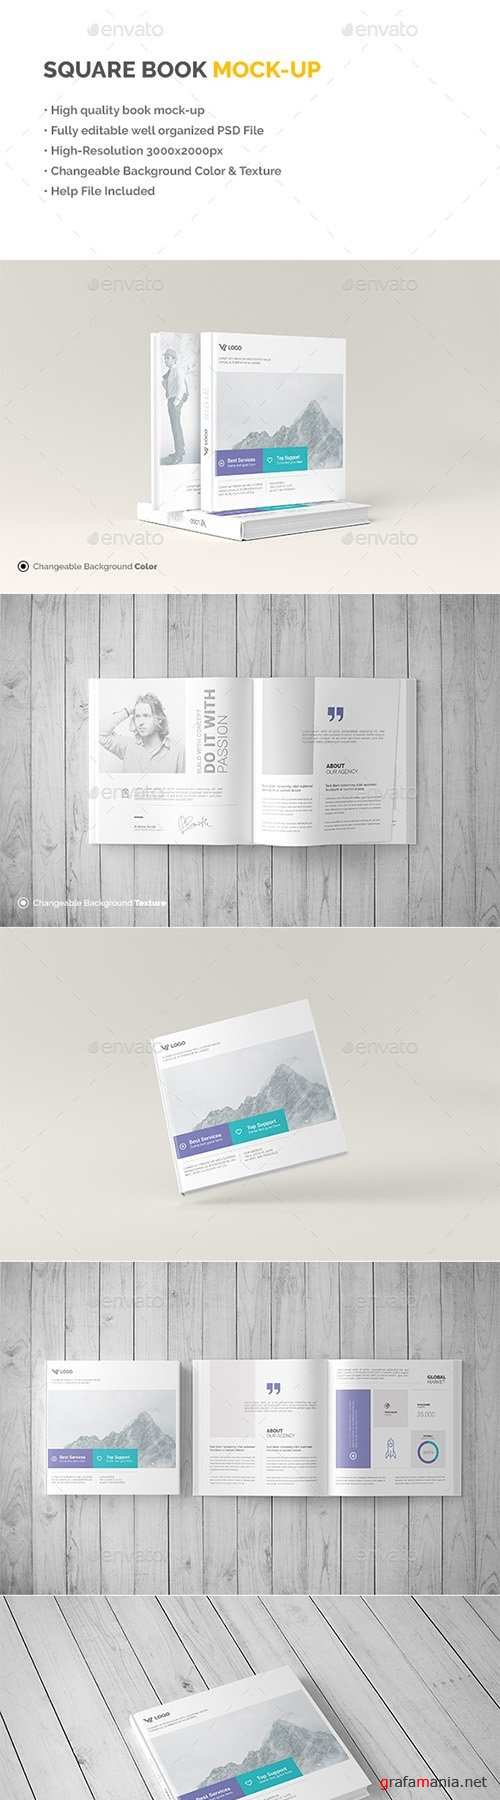 Square Book Mock-Up - Hardcover 19621156